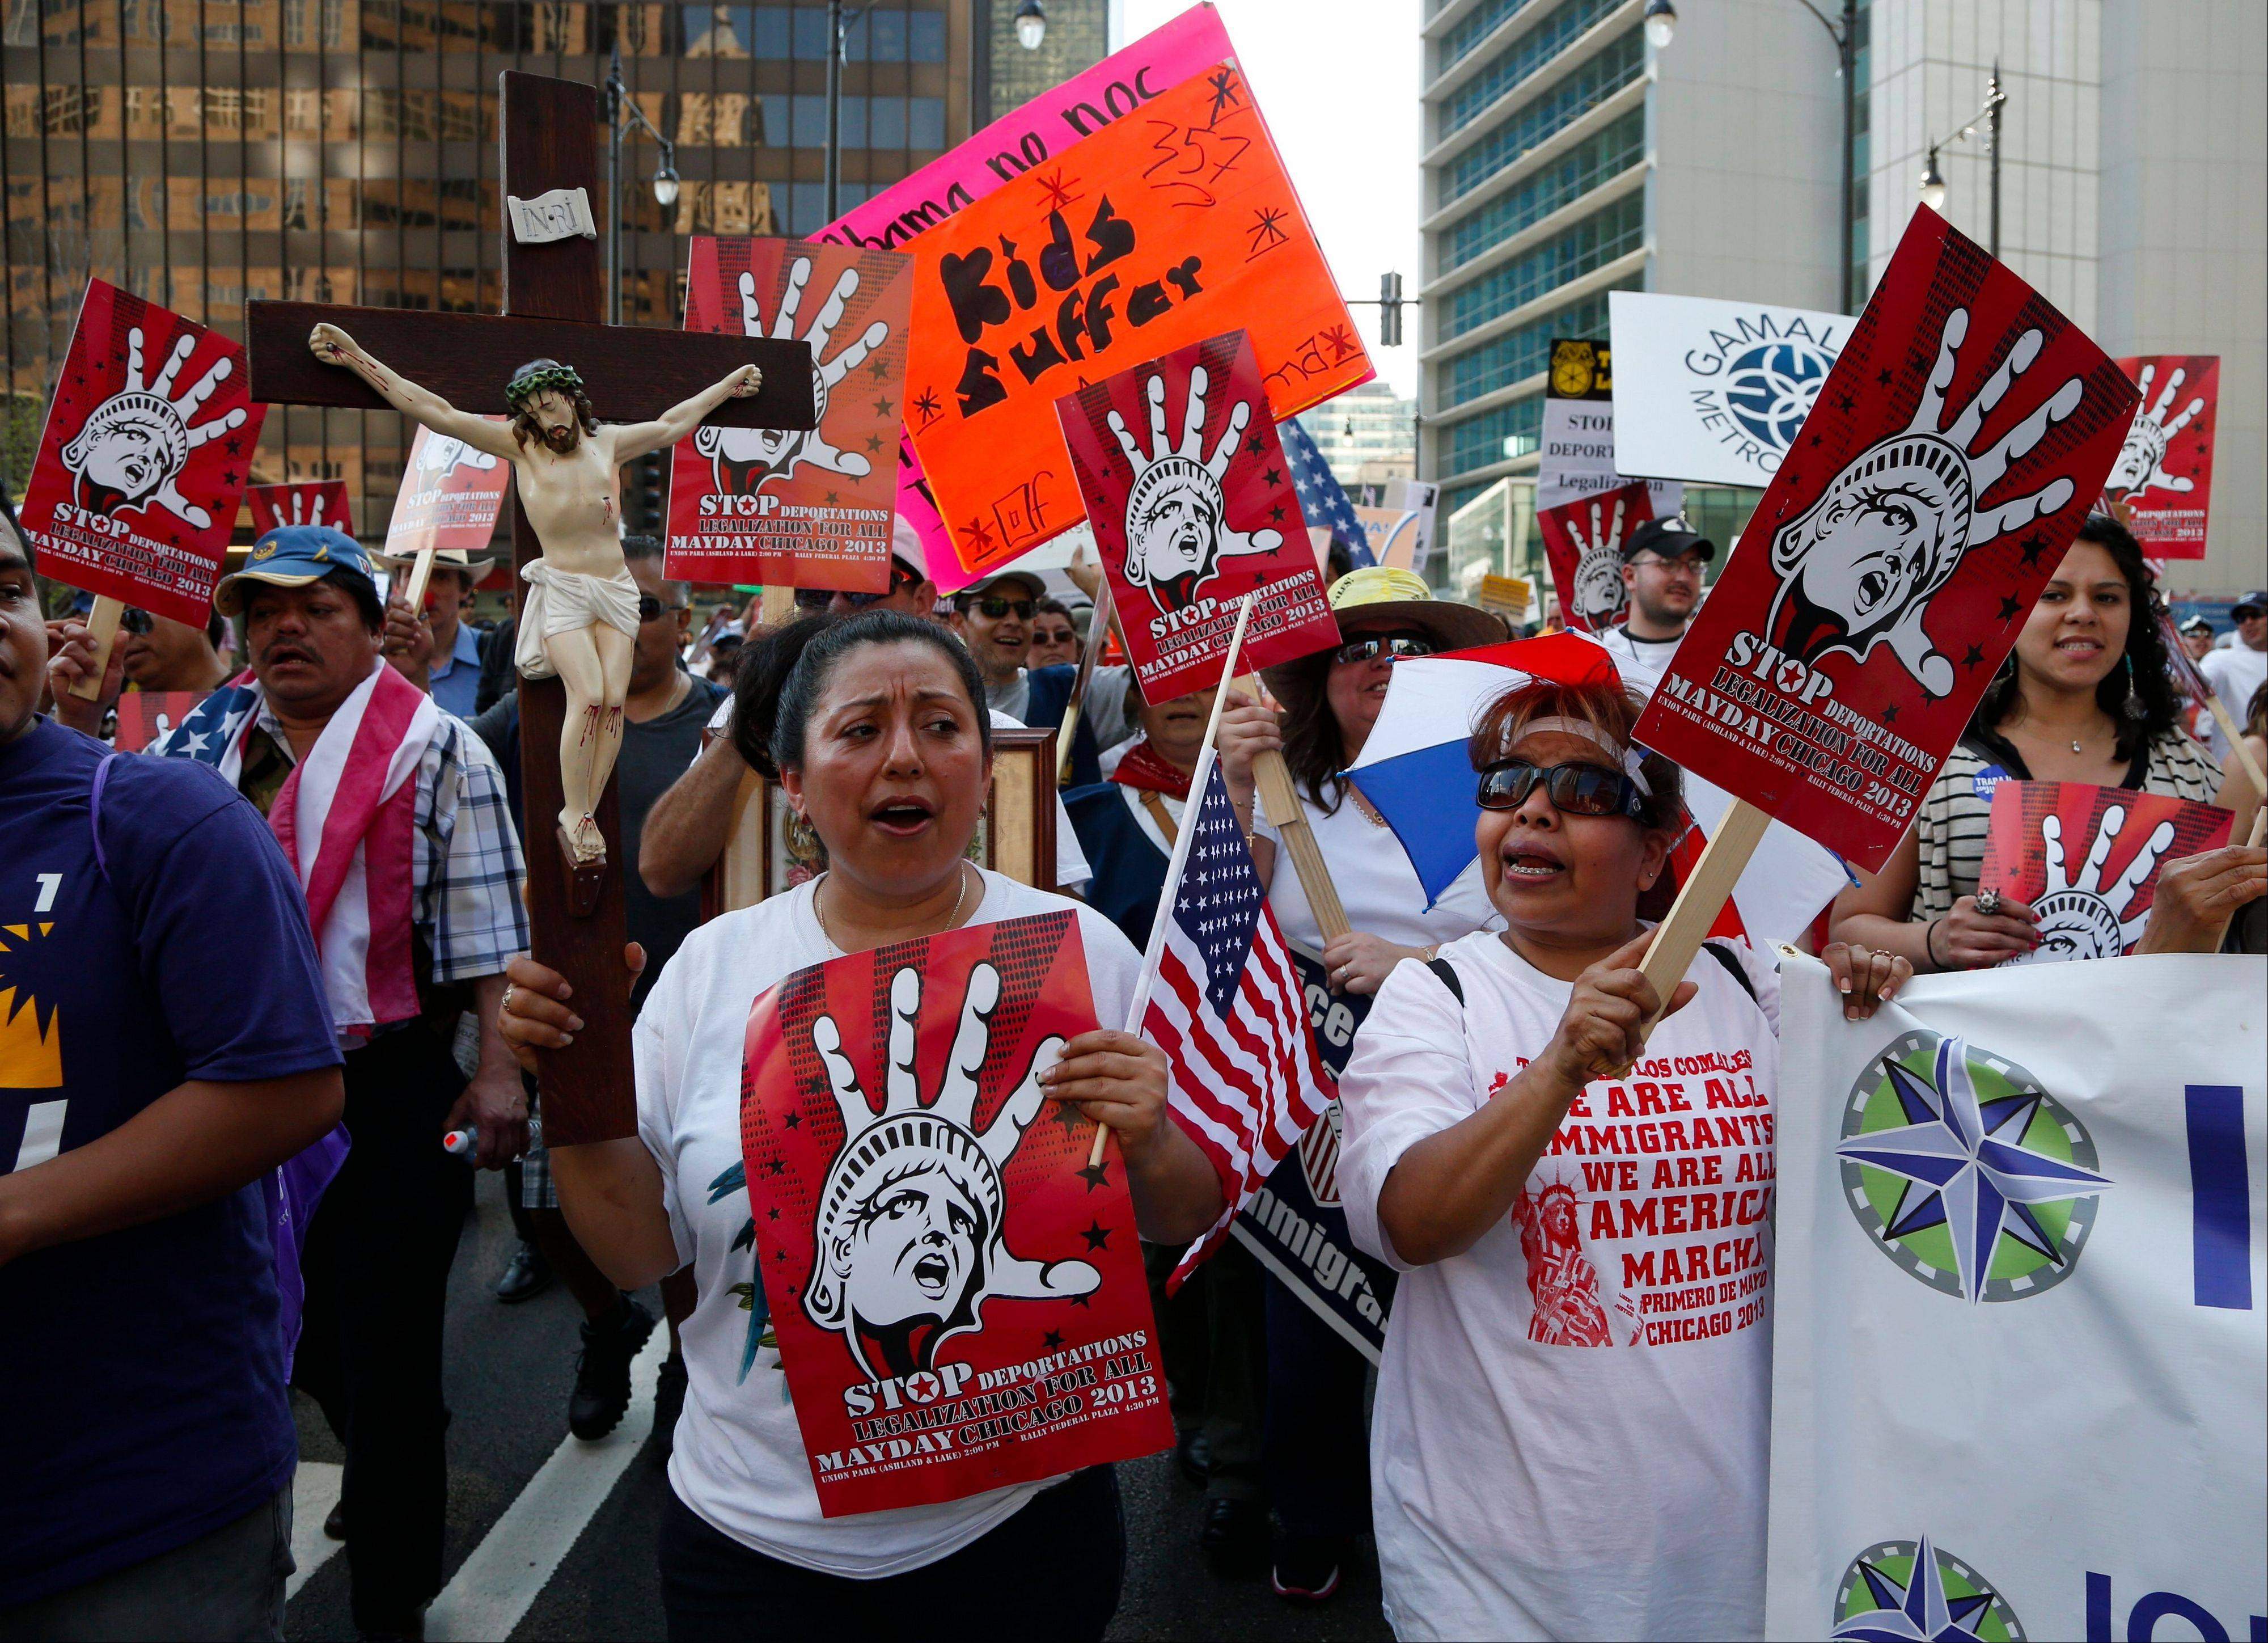 Immigrants and activists march Wednesday in Chicago to urge comprehensive immigration reform.